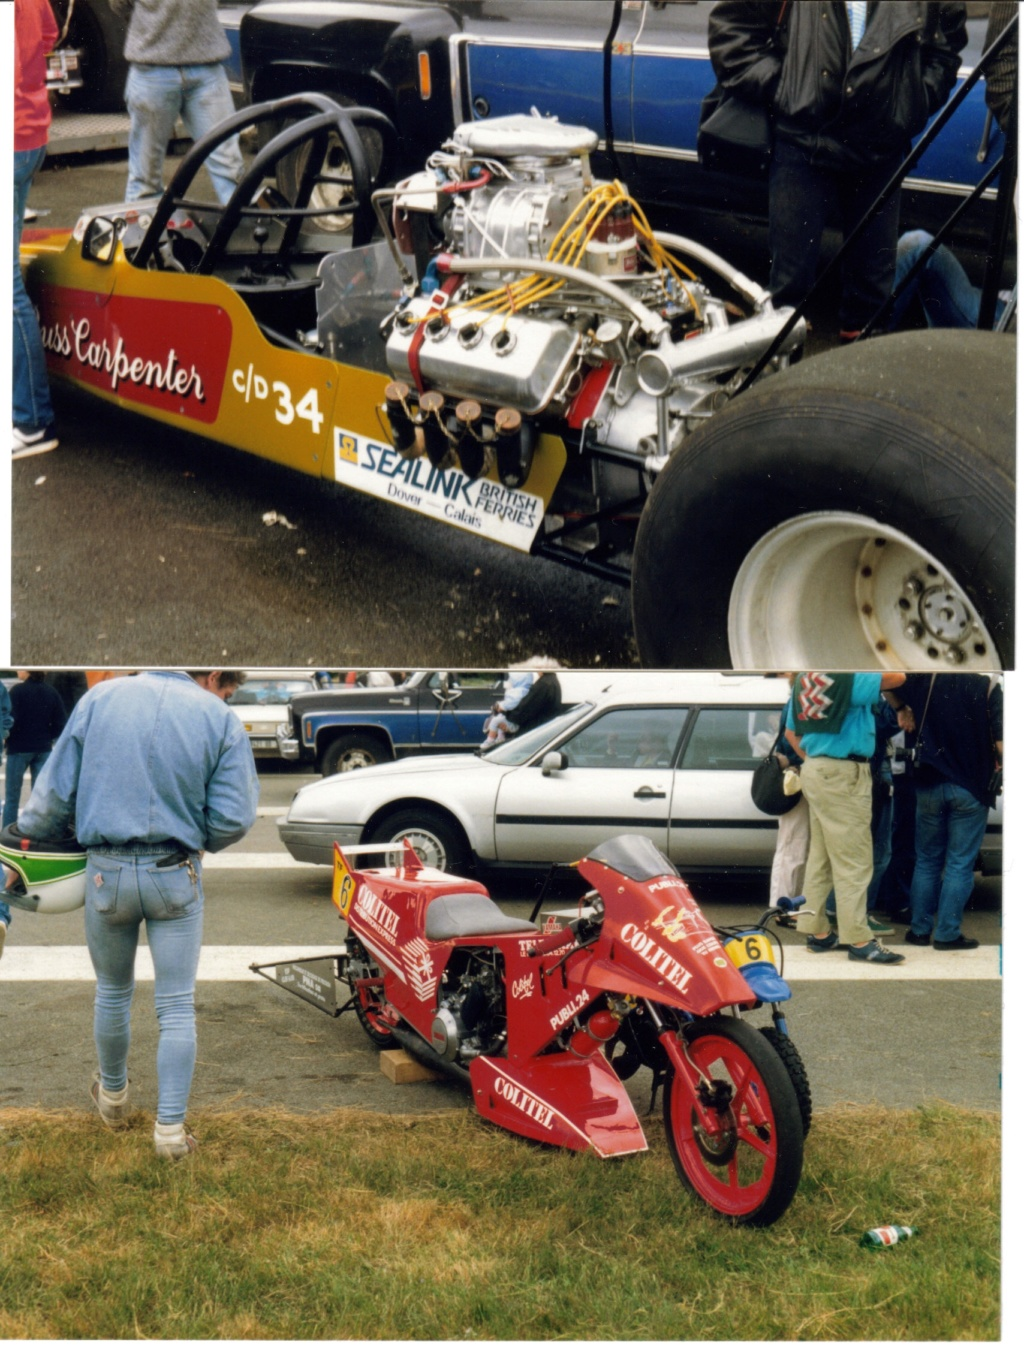 dragster guiscriff 1989 Lastsc10